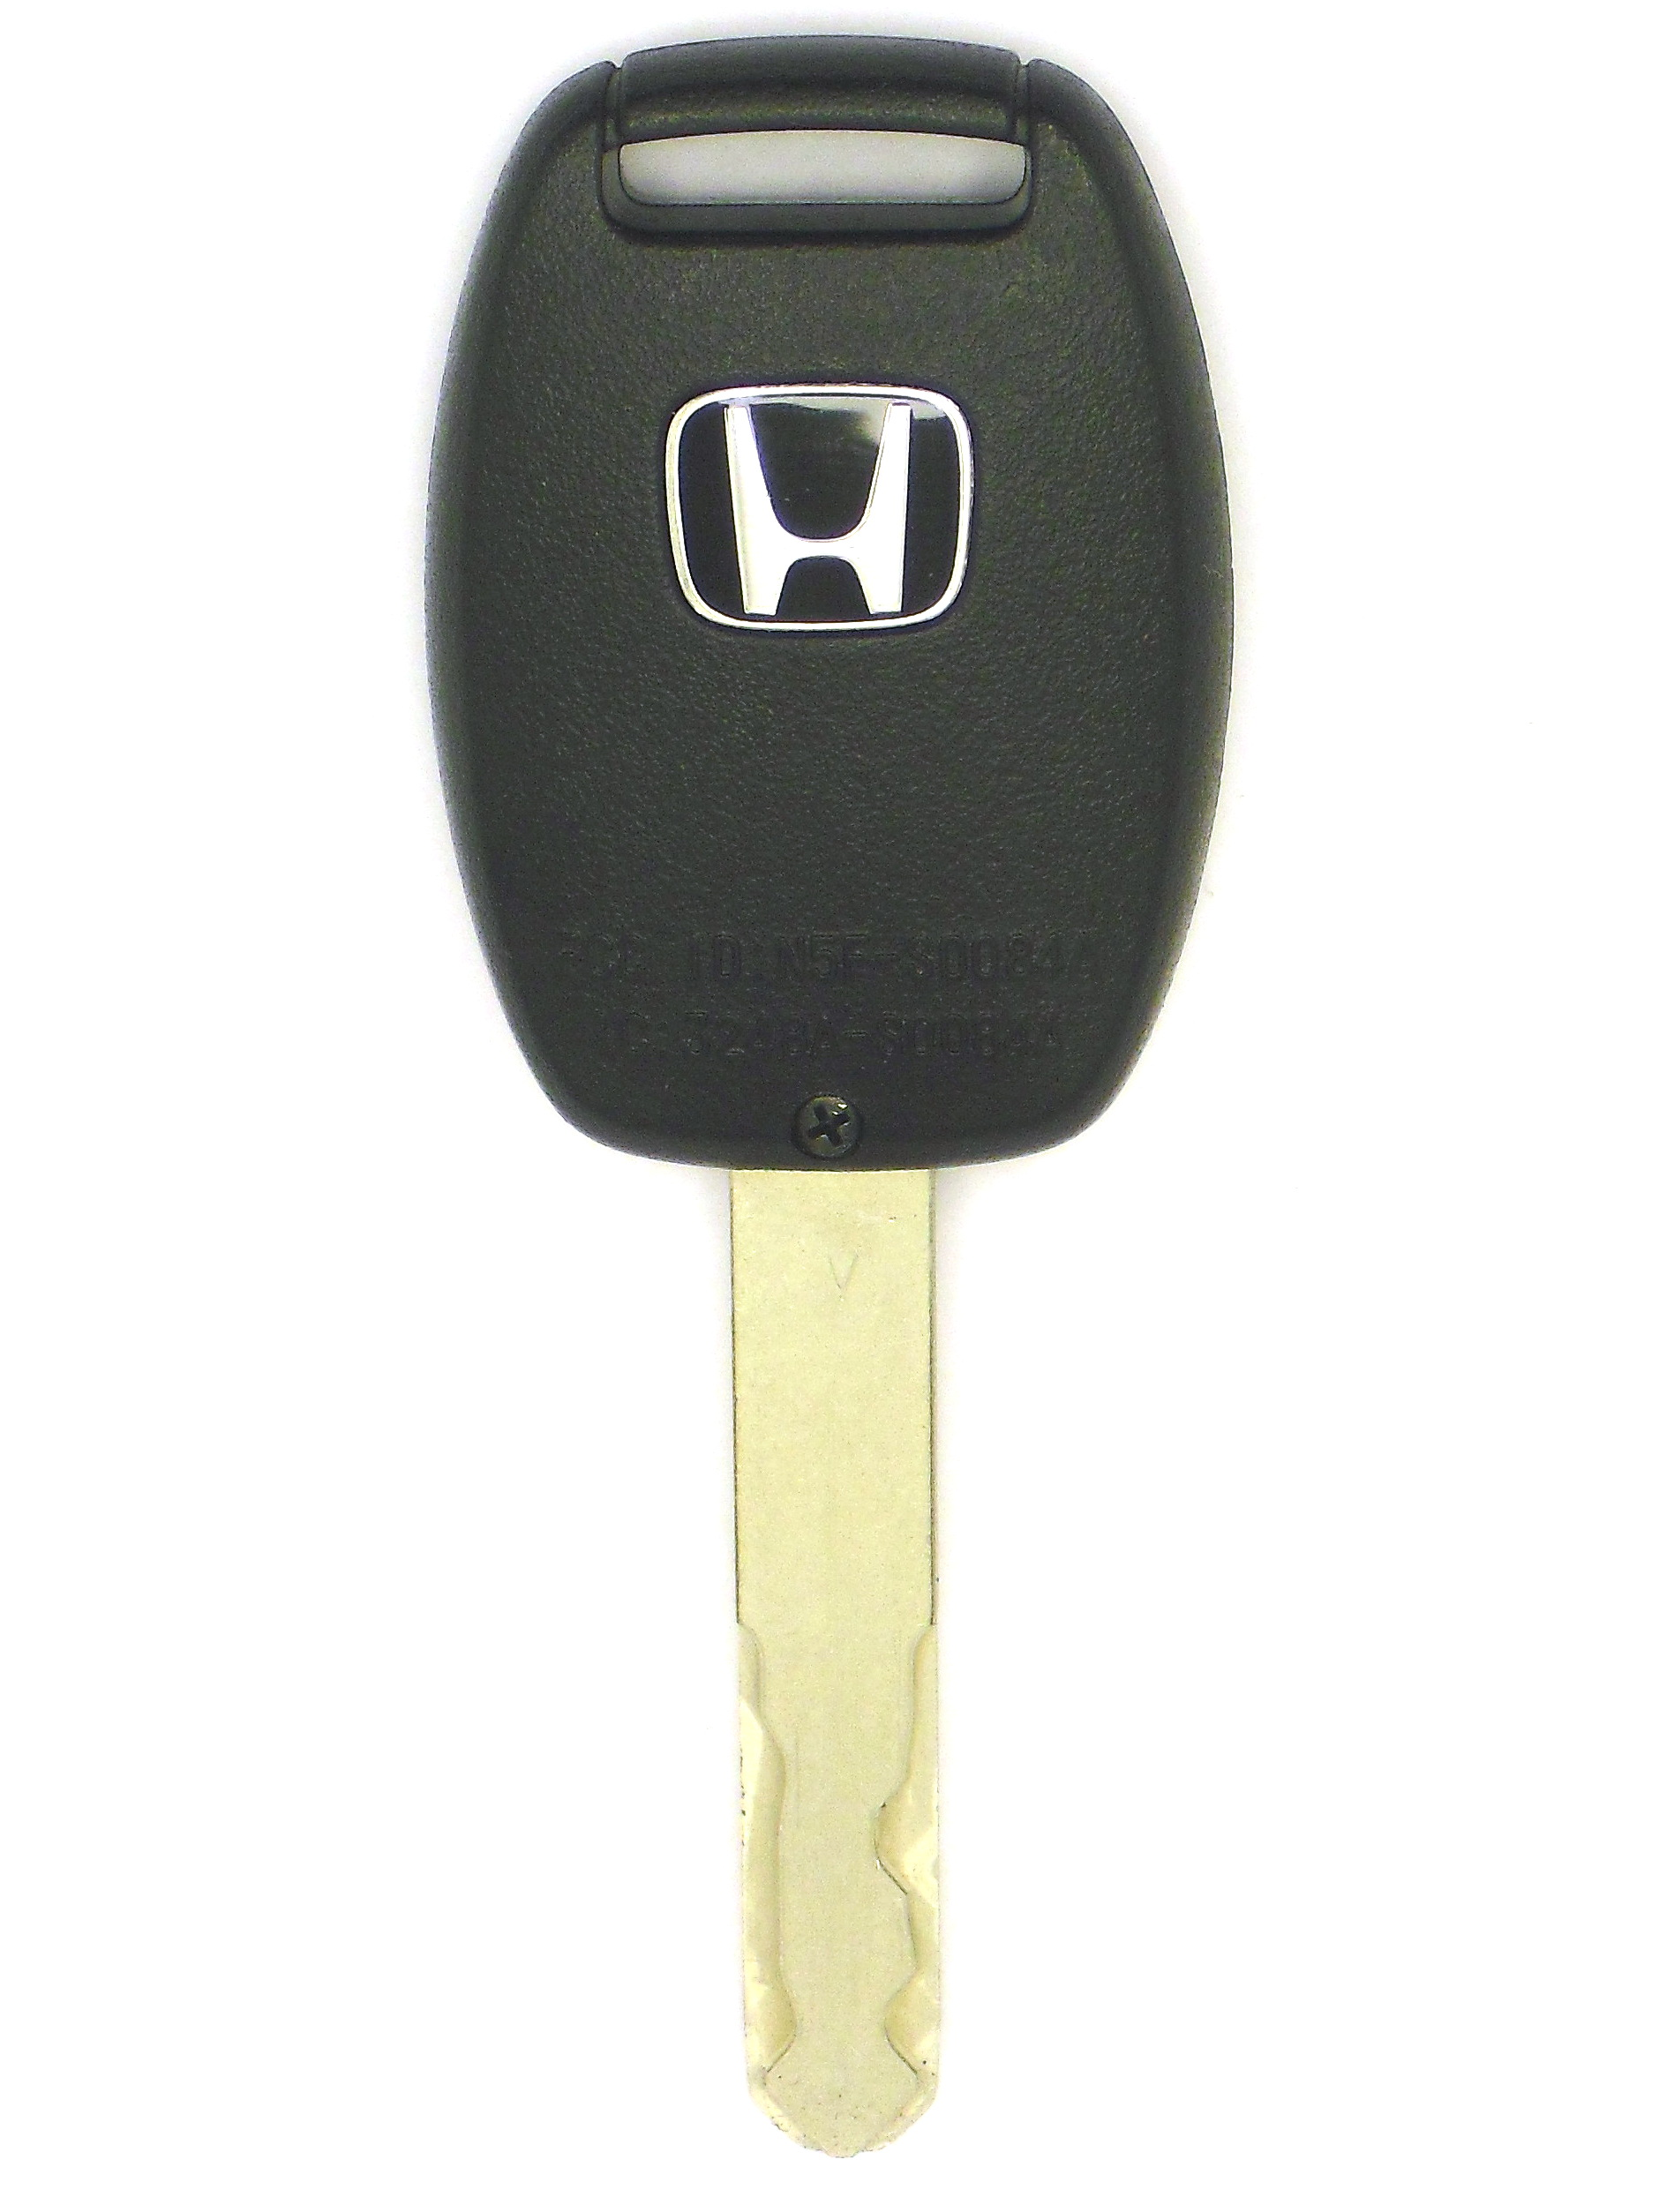 Honda remote key combo 3 button for 2013 honda civic for Program honda civic key